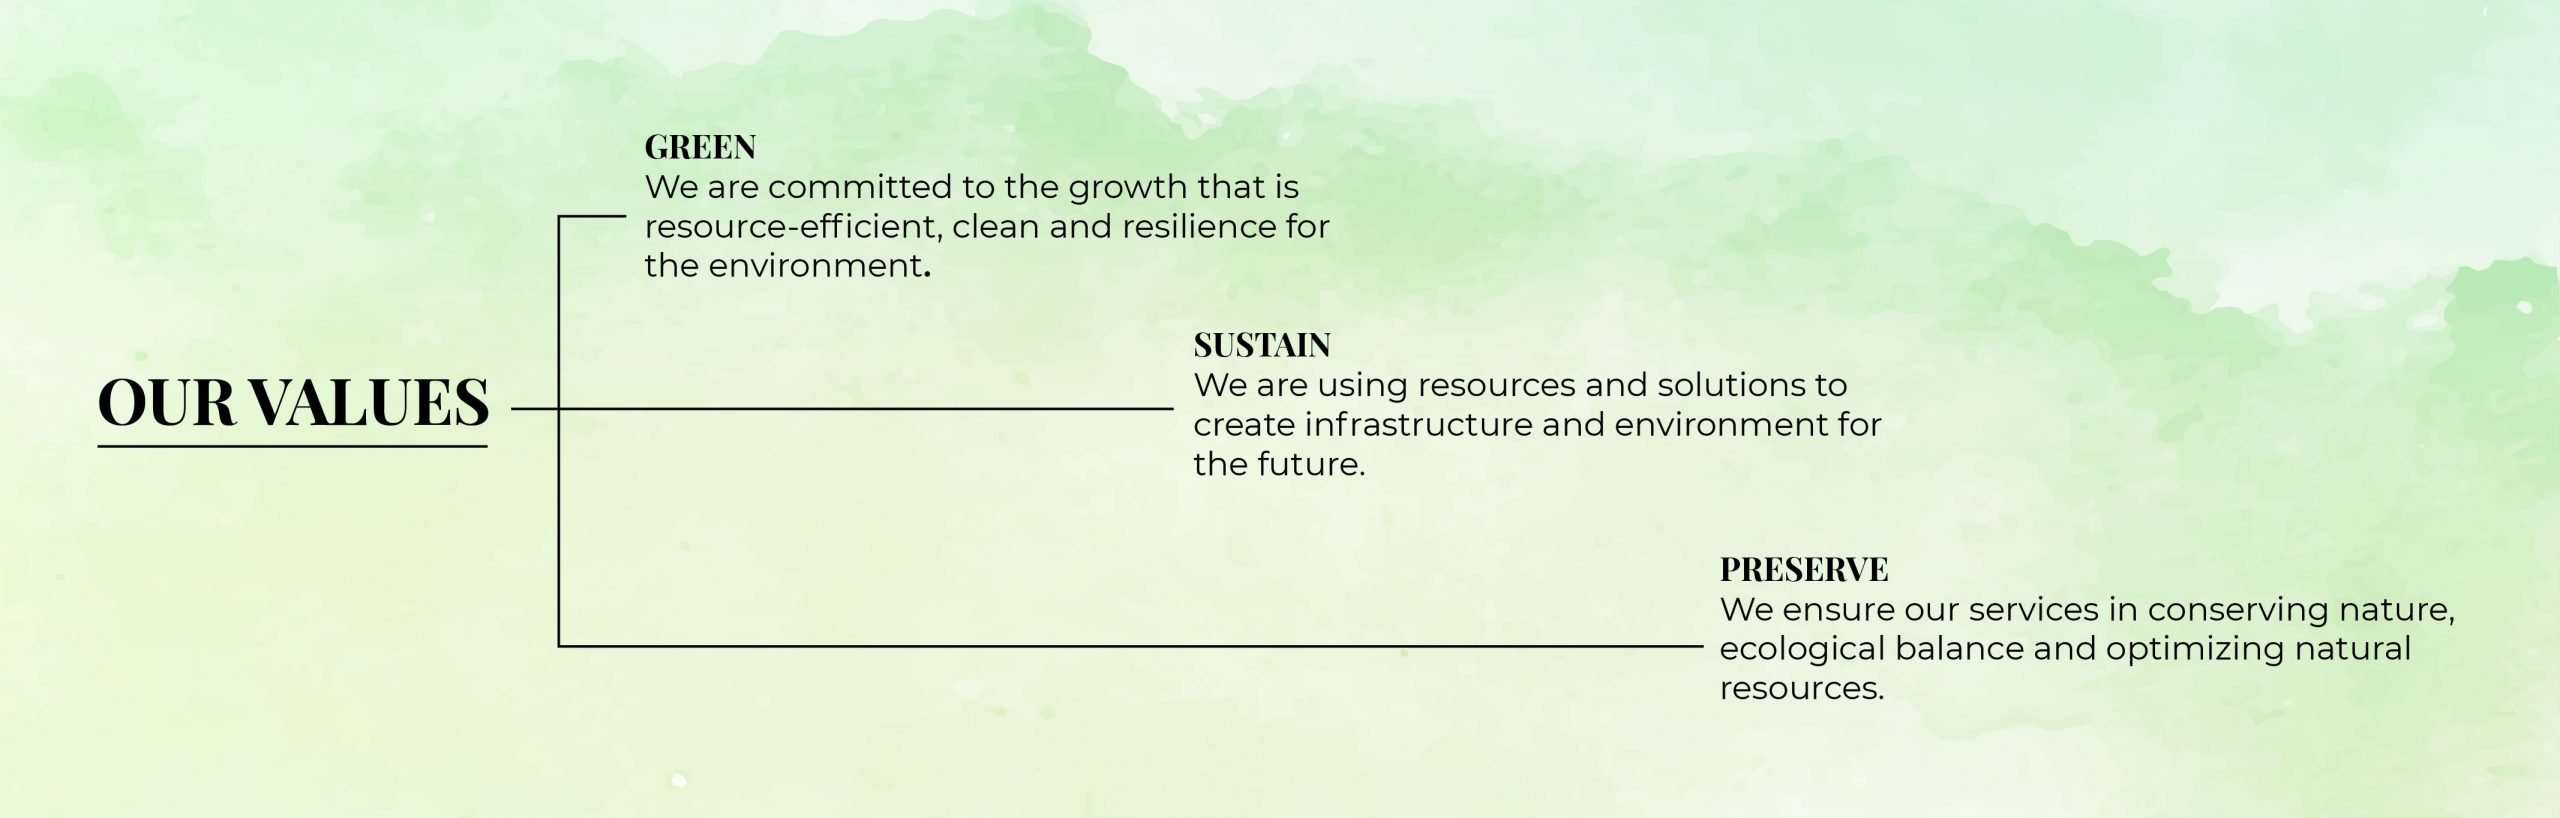 Our Values - GREEN, SUSTAIN, PRESERVE